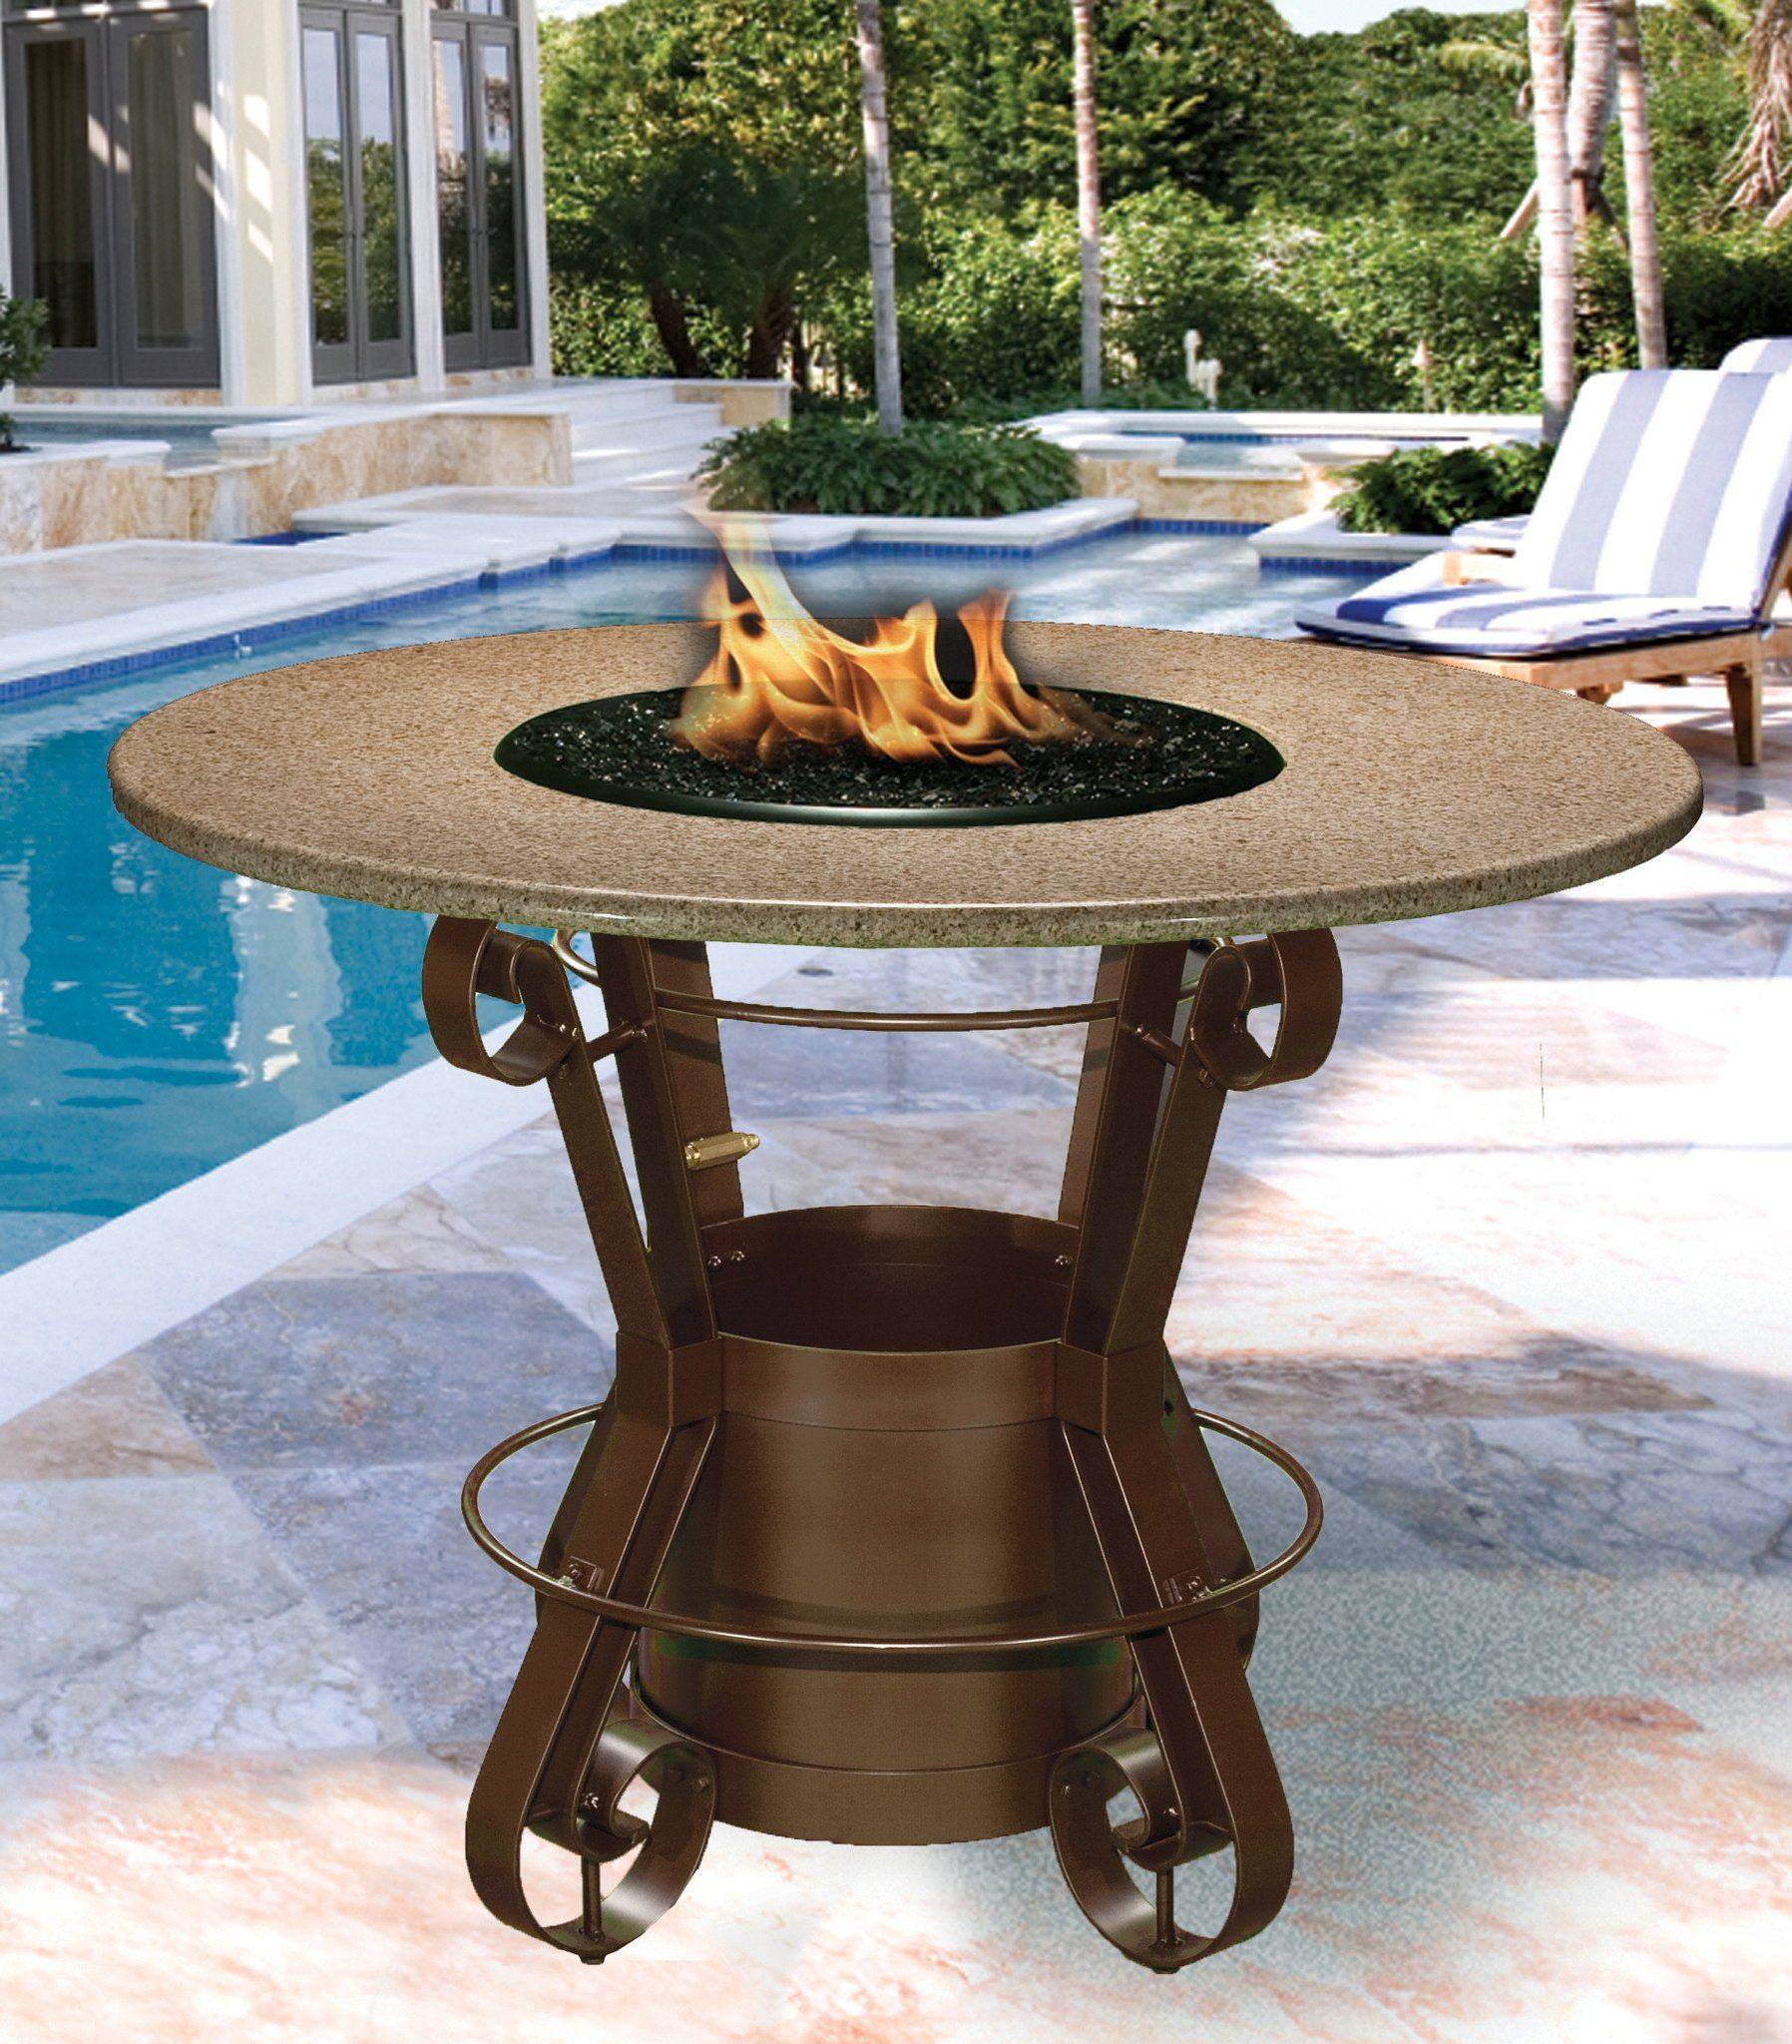 Solano Bar Height Gas Propane Fire Pit Table Fire Pit Plaza